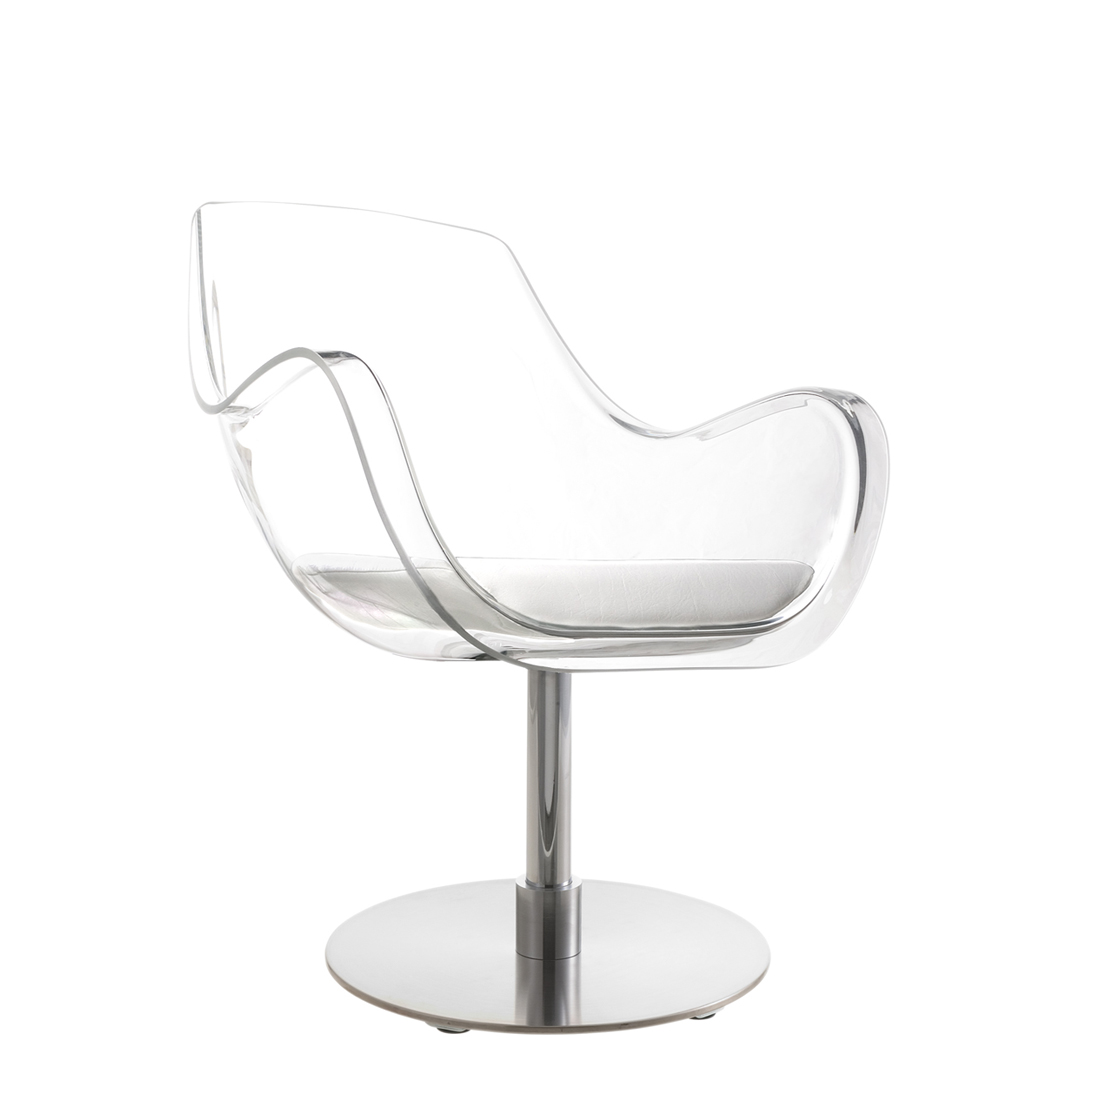 CINDARELLA – Manon chair 3